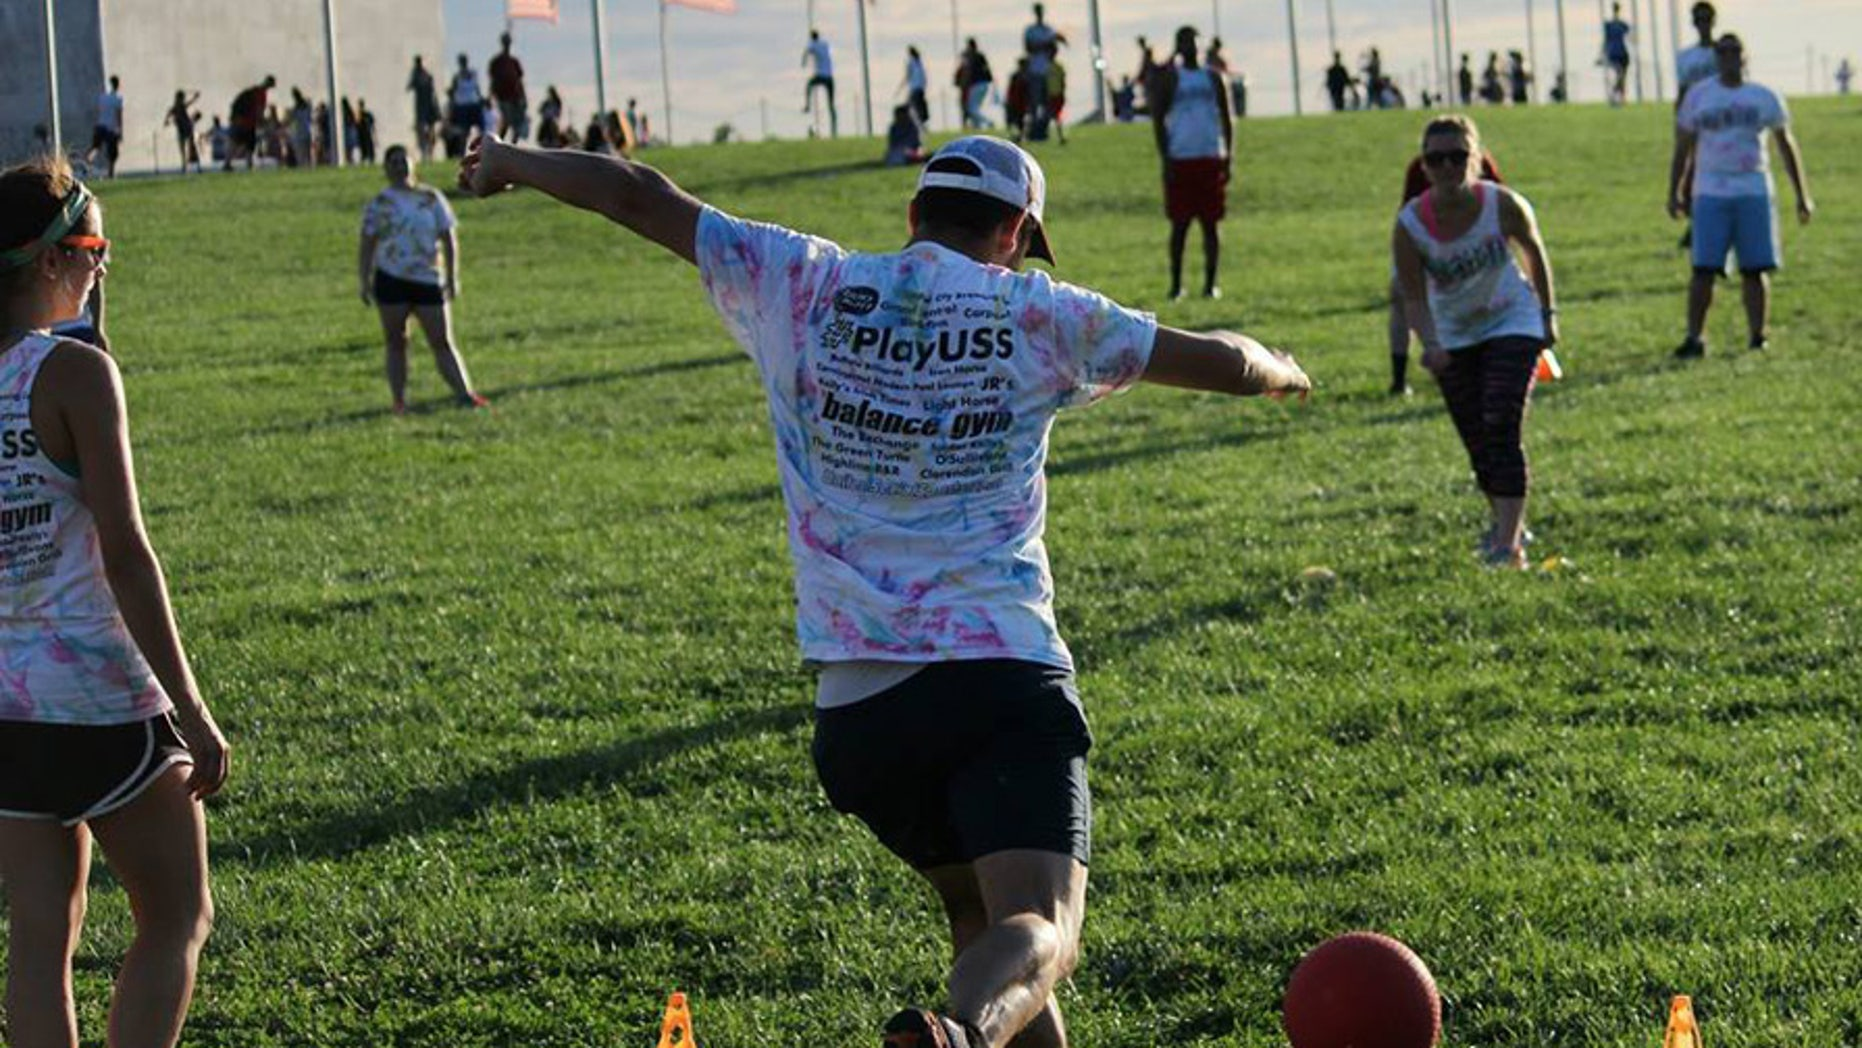 Games like these could soon be restricted in parts of the National Mall.